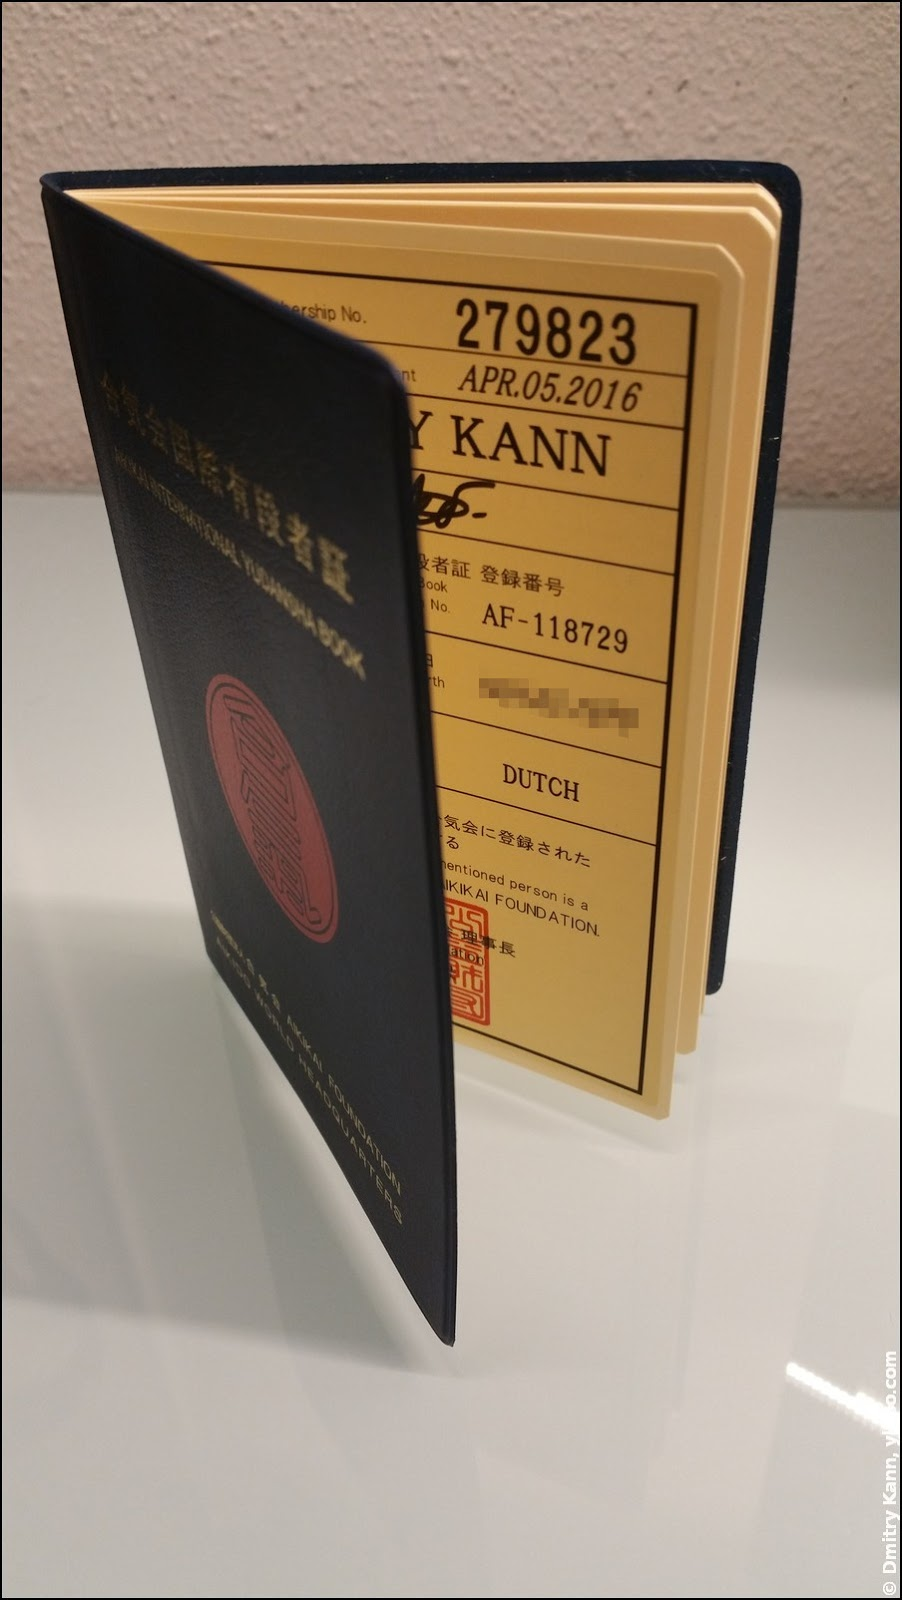 Aikidoka's passport.